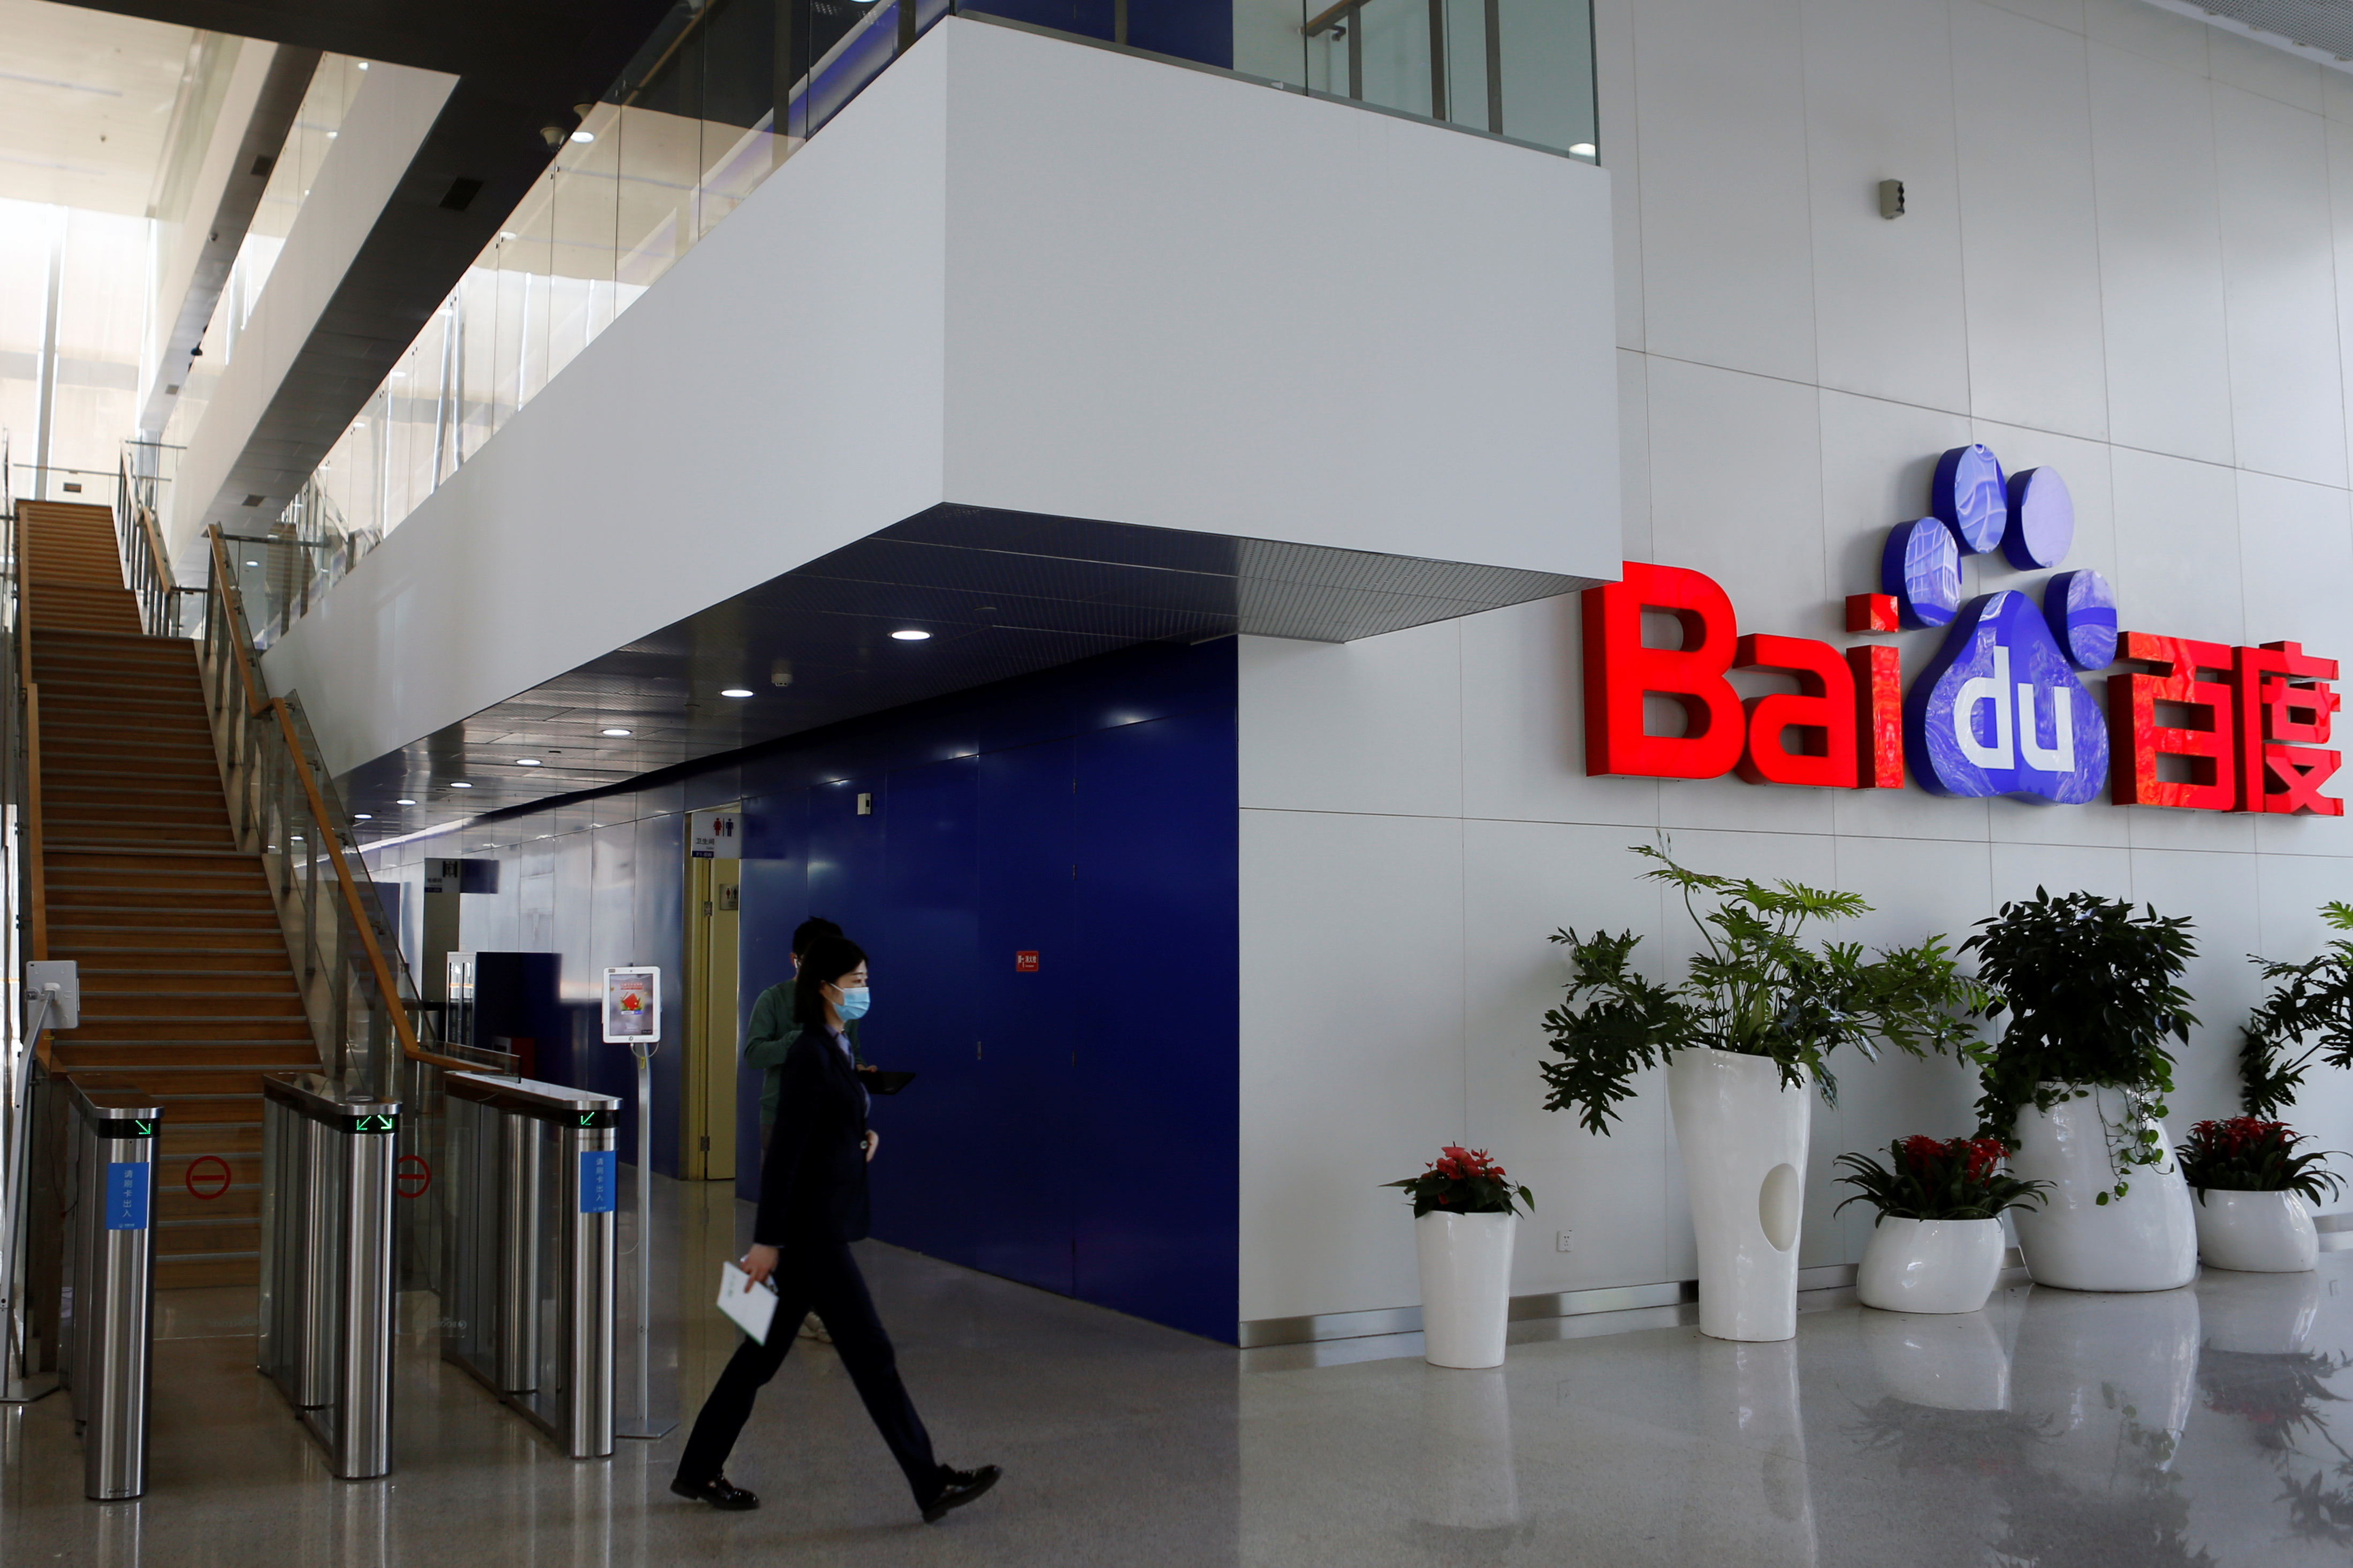 People walk near a Baidu logo at the company headquarters in Beijing, China April 23, 2021. REUTERS/Florence Lo